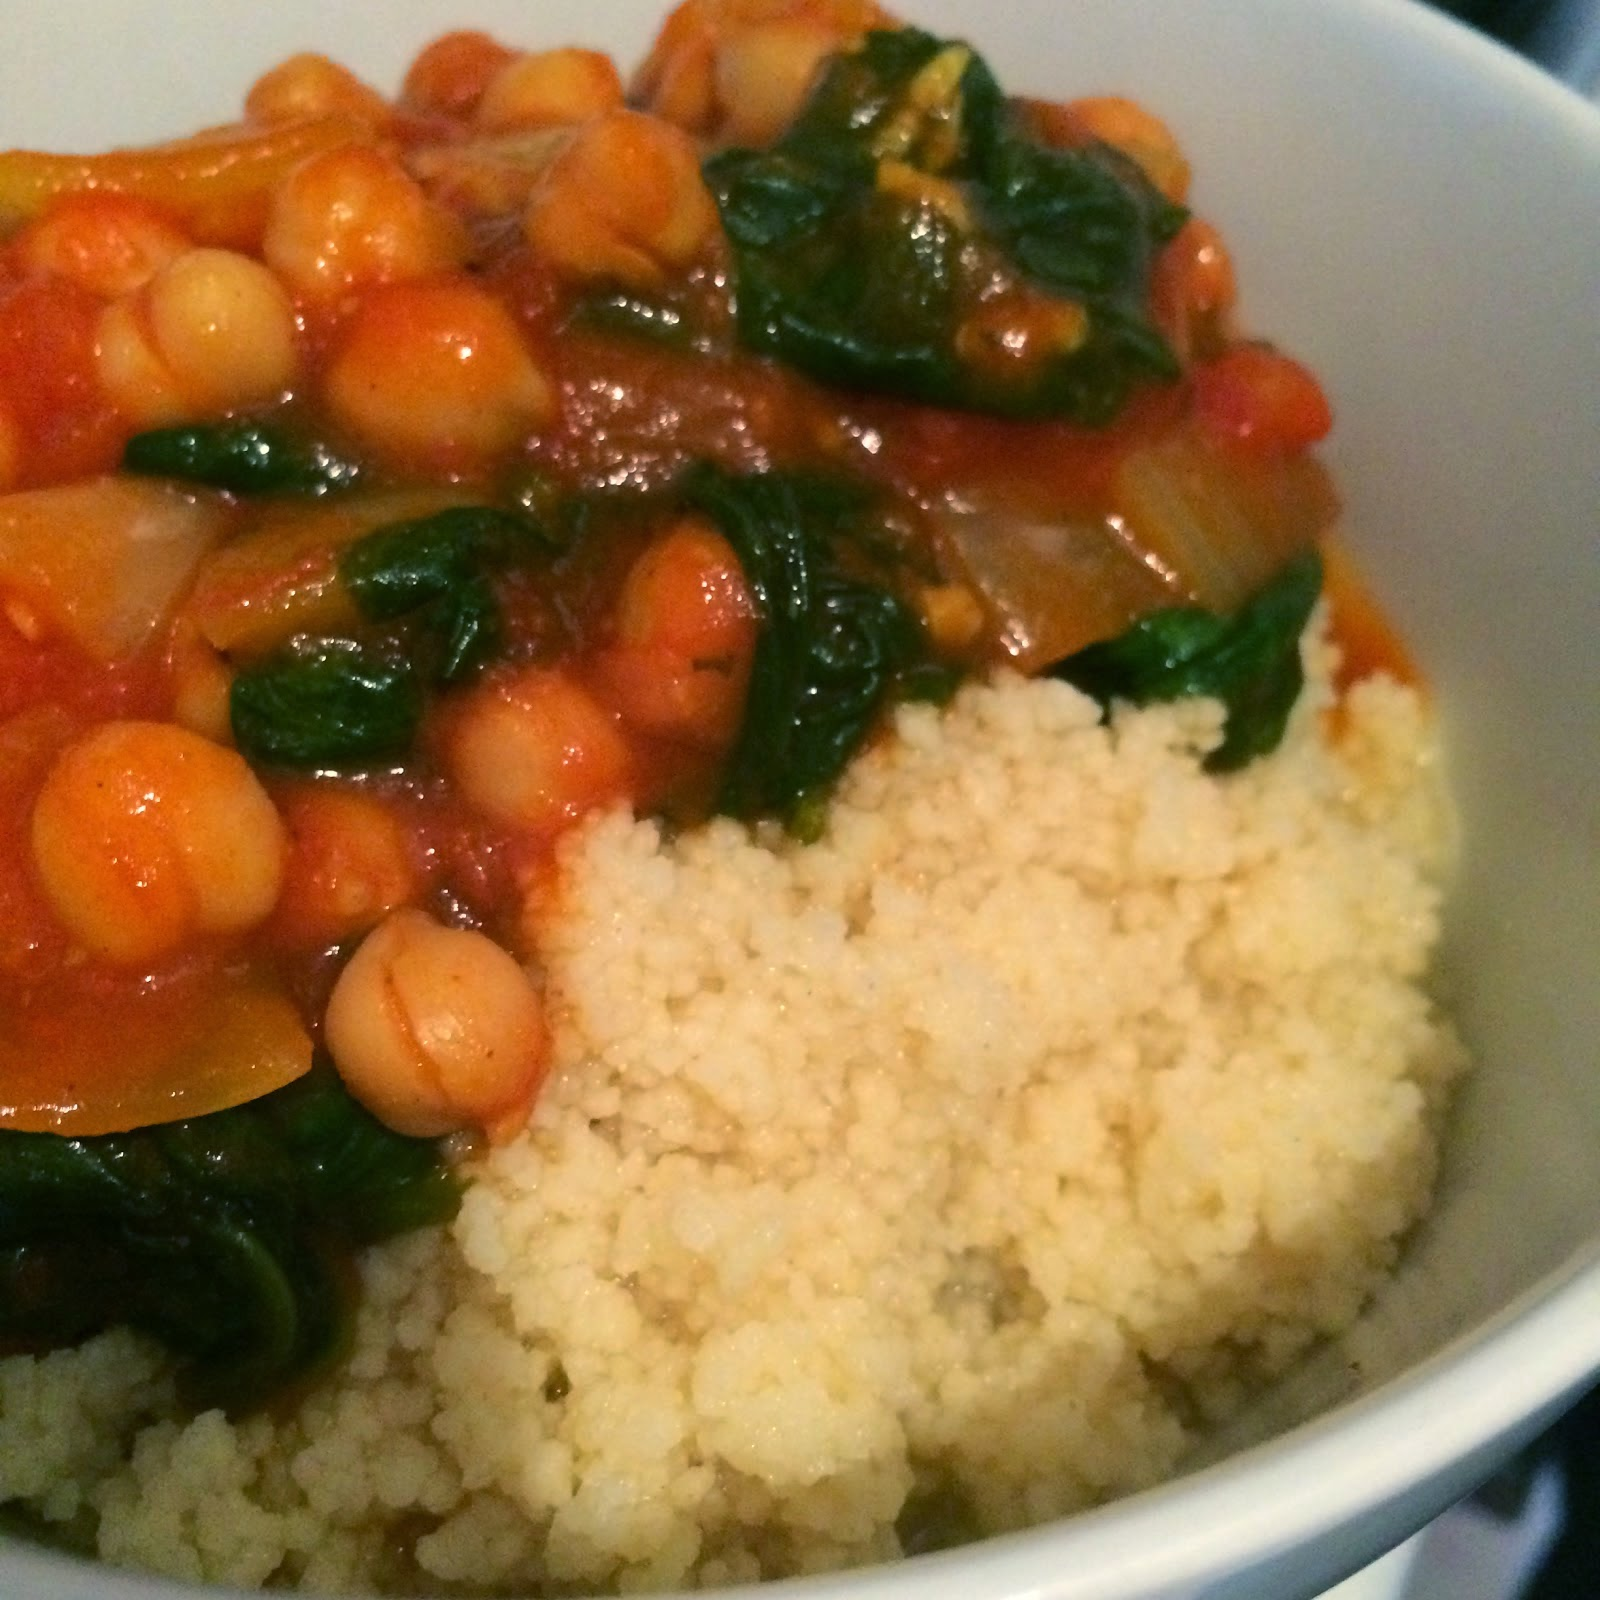 http://www.youwanttocook.com/2014/07/spicy-chickpea-curry.html